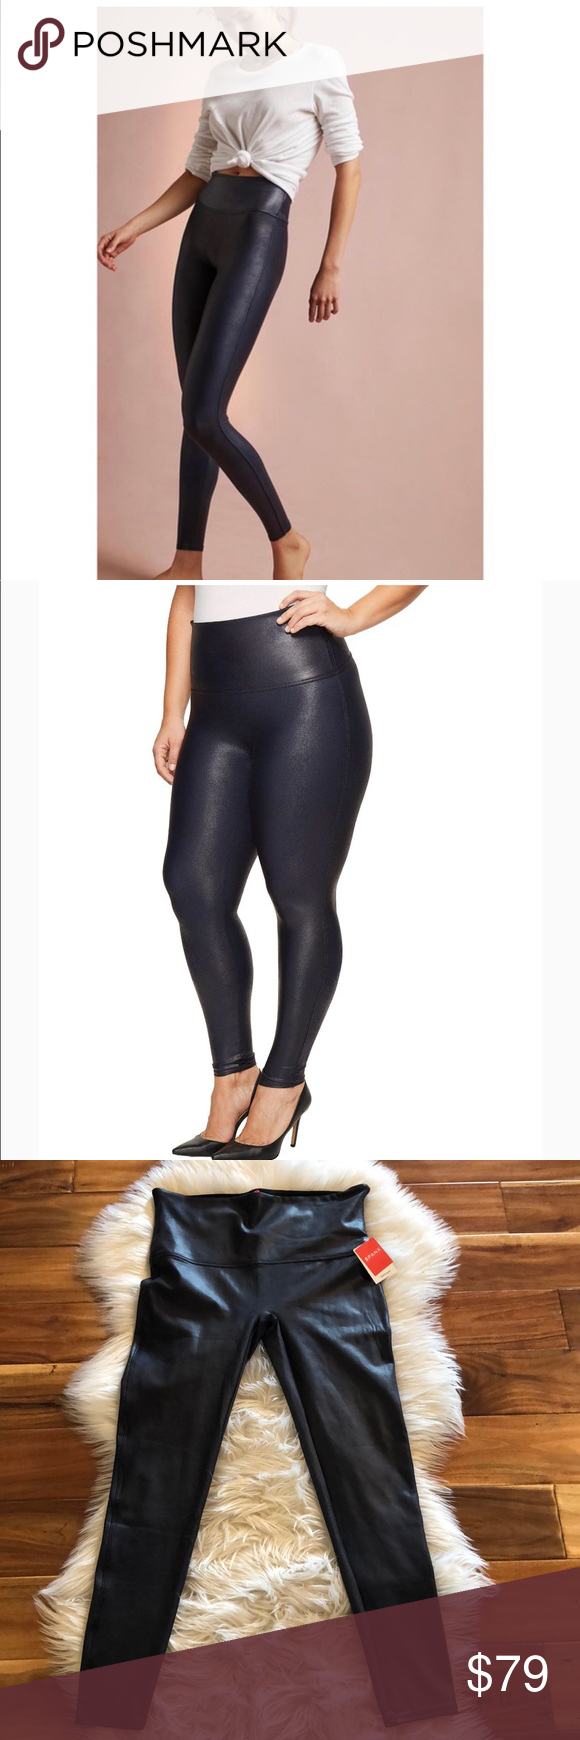 """467d923cc8684 Spanx Faux Leather Leggings Navy Blue 1X NWT Spanx Faux Leather Leggings  Navy Blue 1X NWT High Rise Measurements taken laying flat waist 16"""" Rise  about 11"""" ..."""